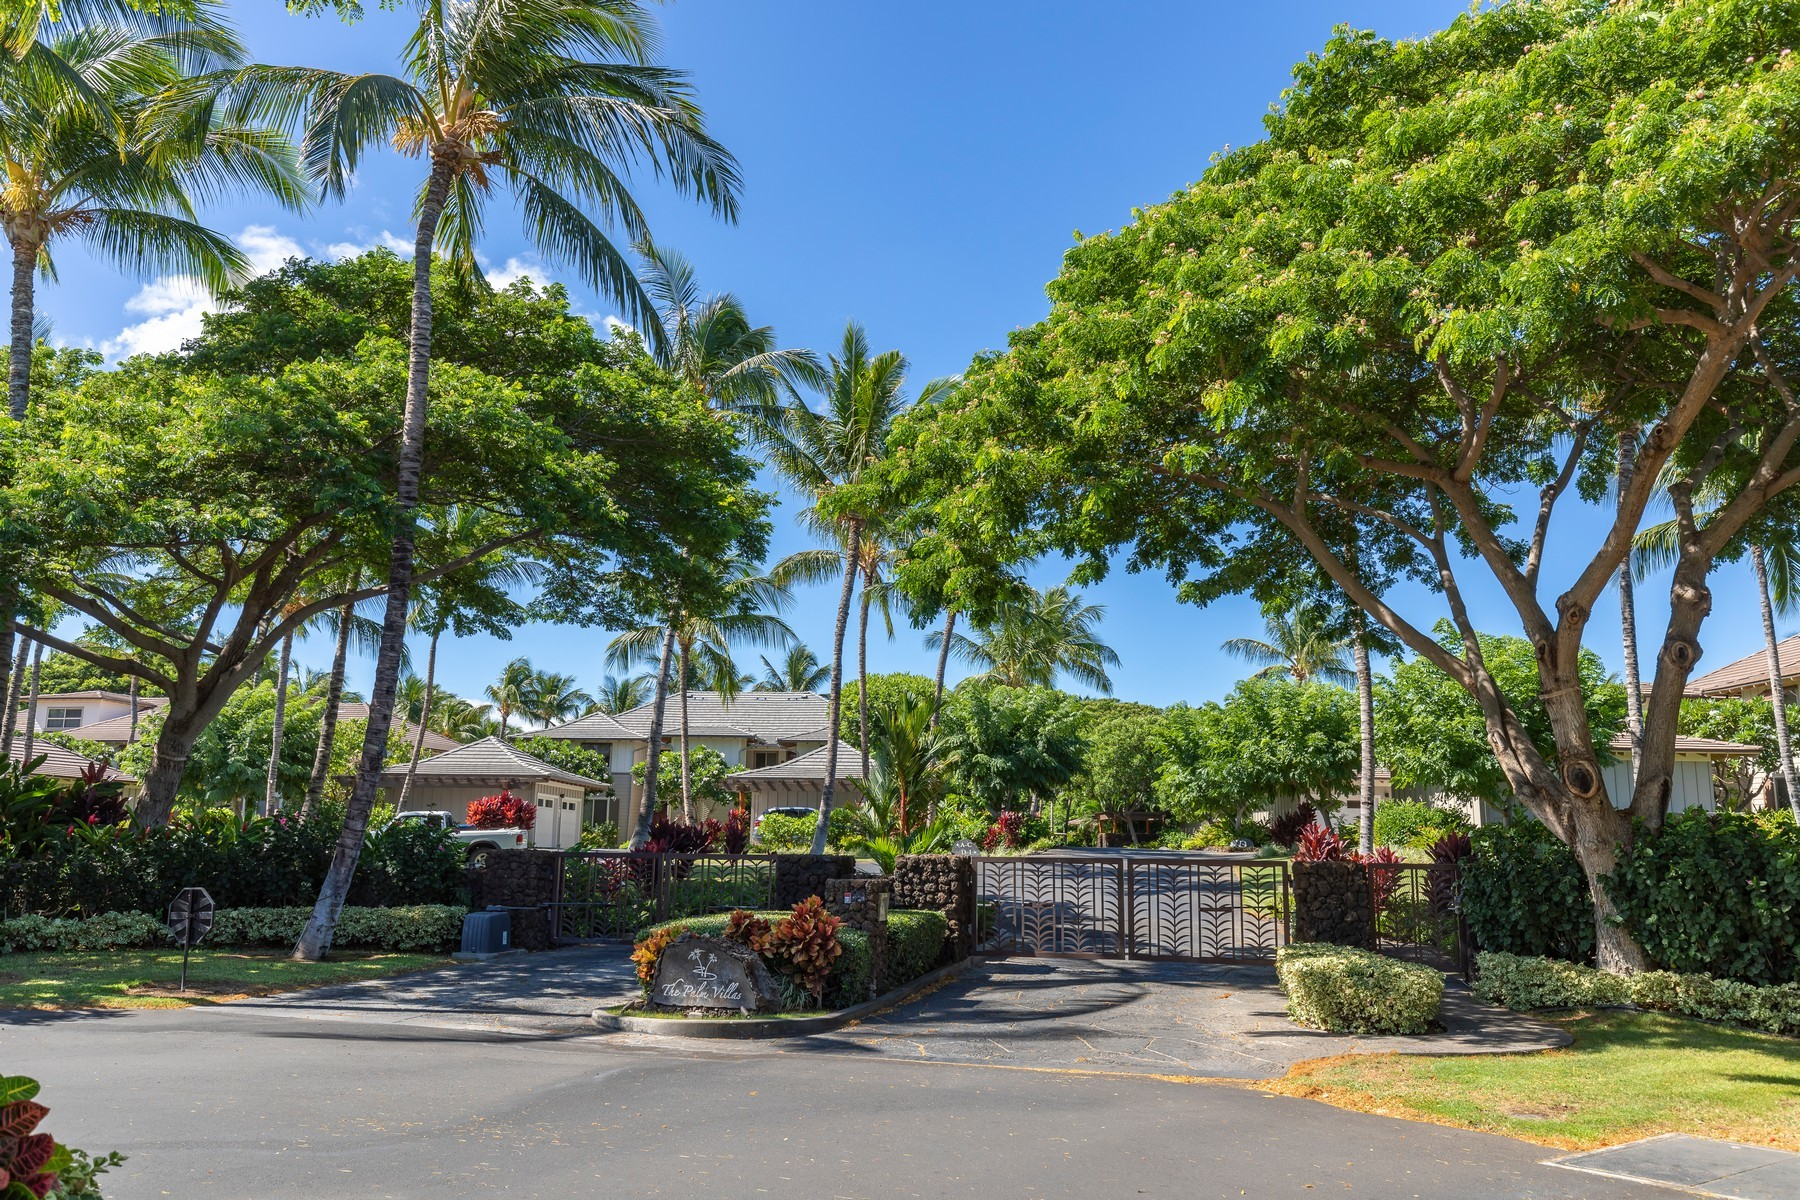 Condominium for Active at Mauna Lani Resort 68-1376 Pauoa Rd #E-1 Waimea, Hawaii 96743 United States